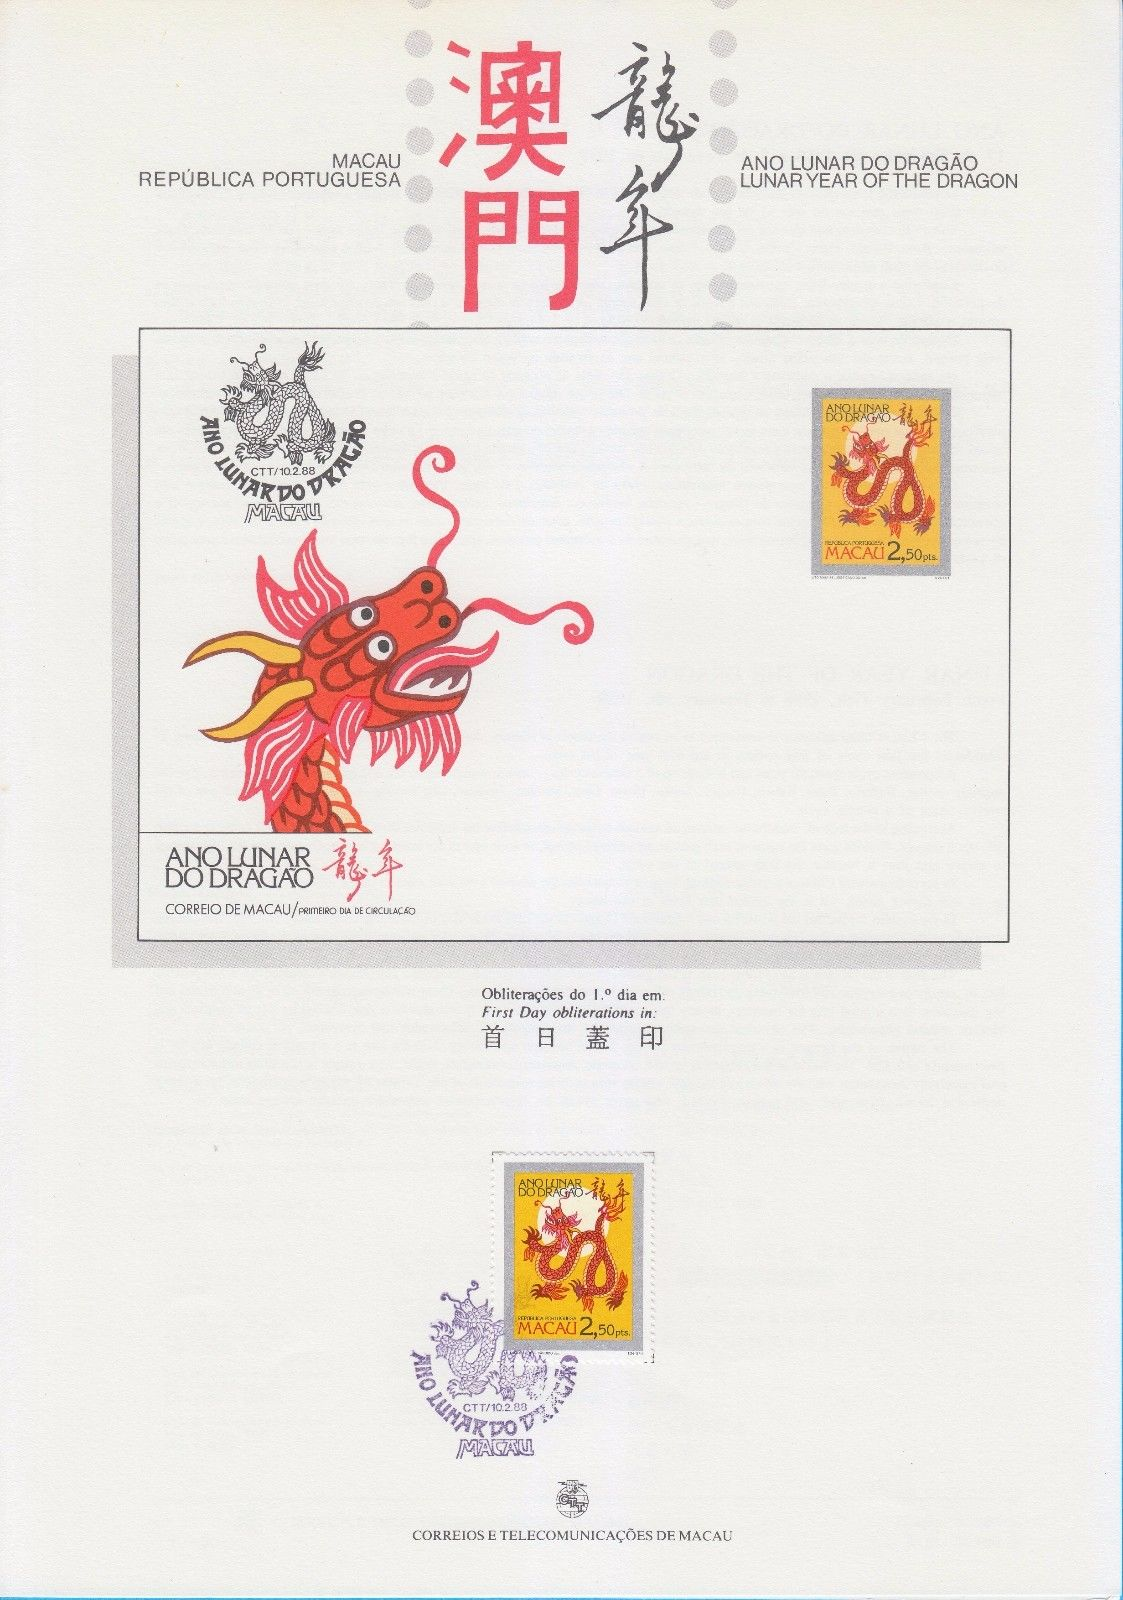 Macao 1988 Year of the Dragon pre.jpg